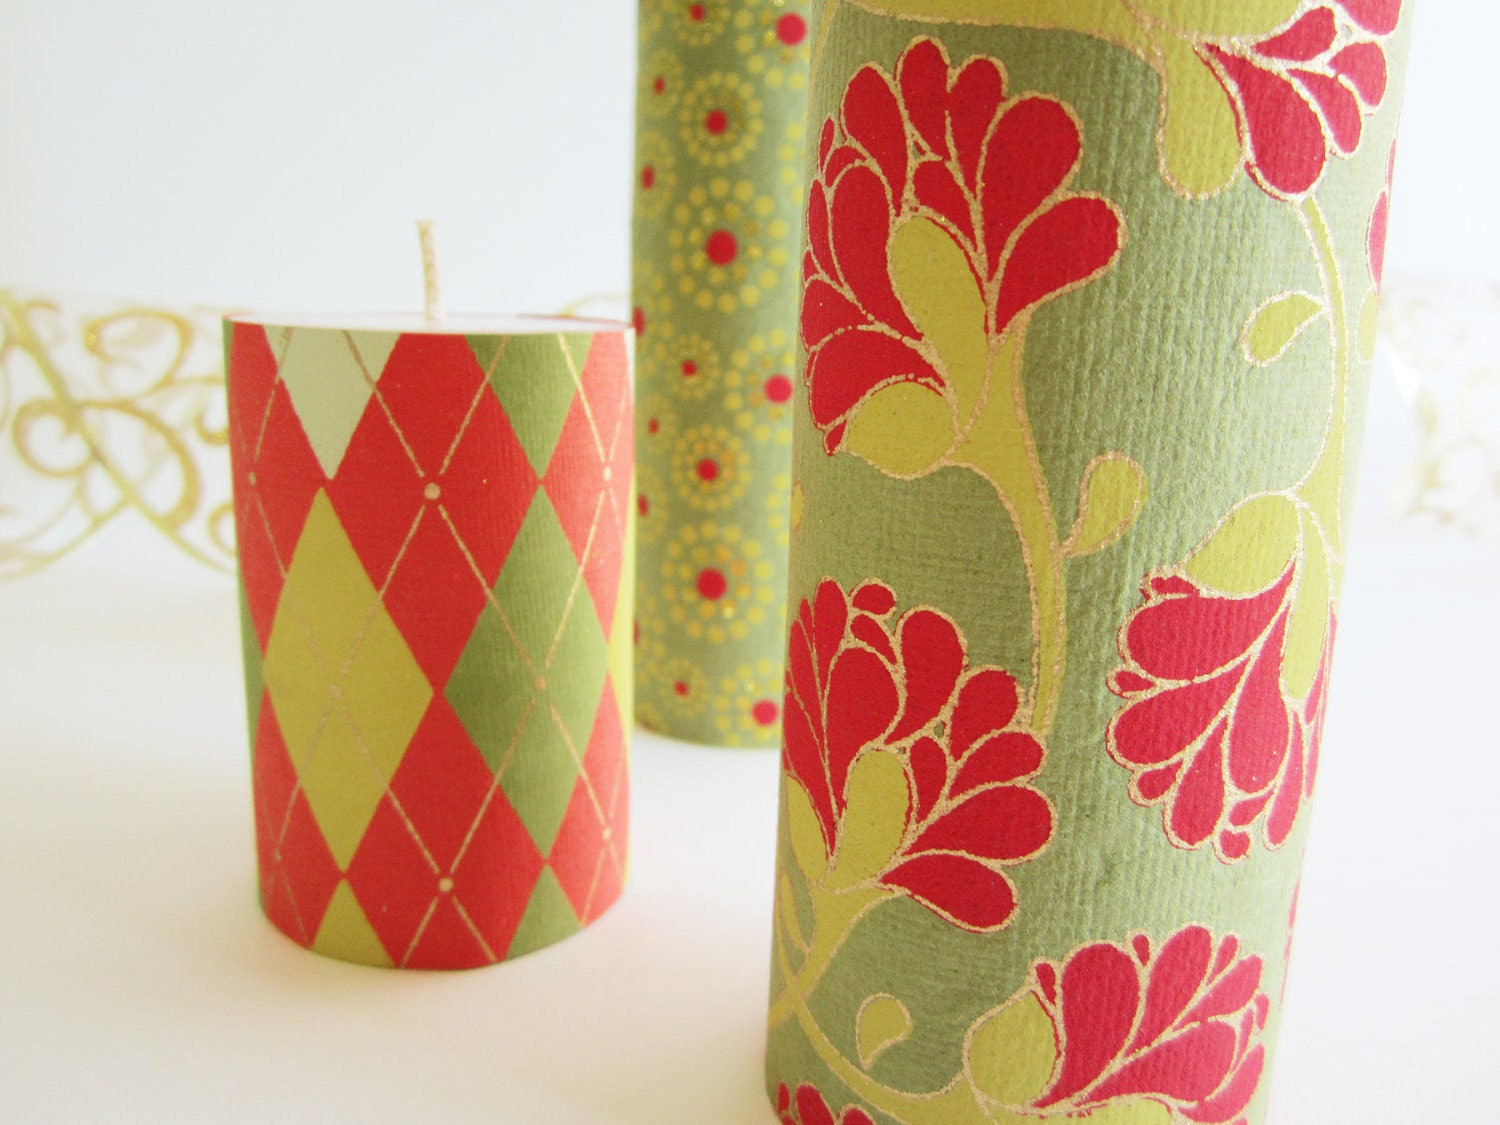 Set of Three Pillar Candles Wrapped and Decorated for the Holidays with Handmade Indian Paper: Argyle, Floral and Concentric Dots on Moss